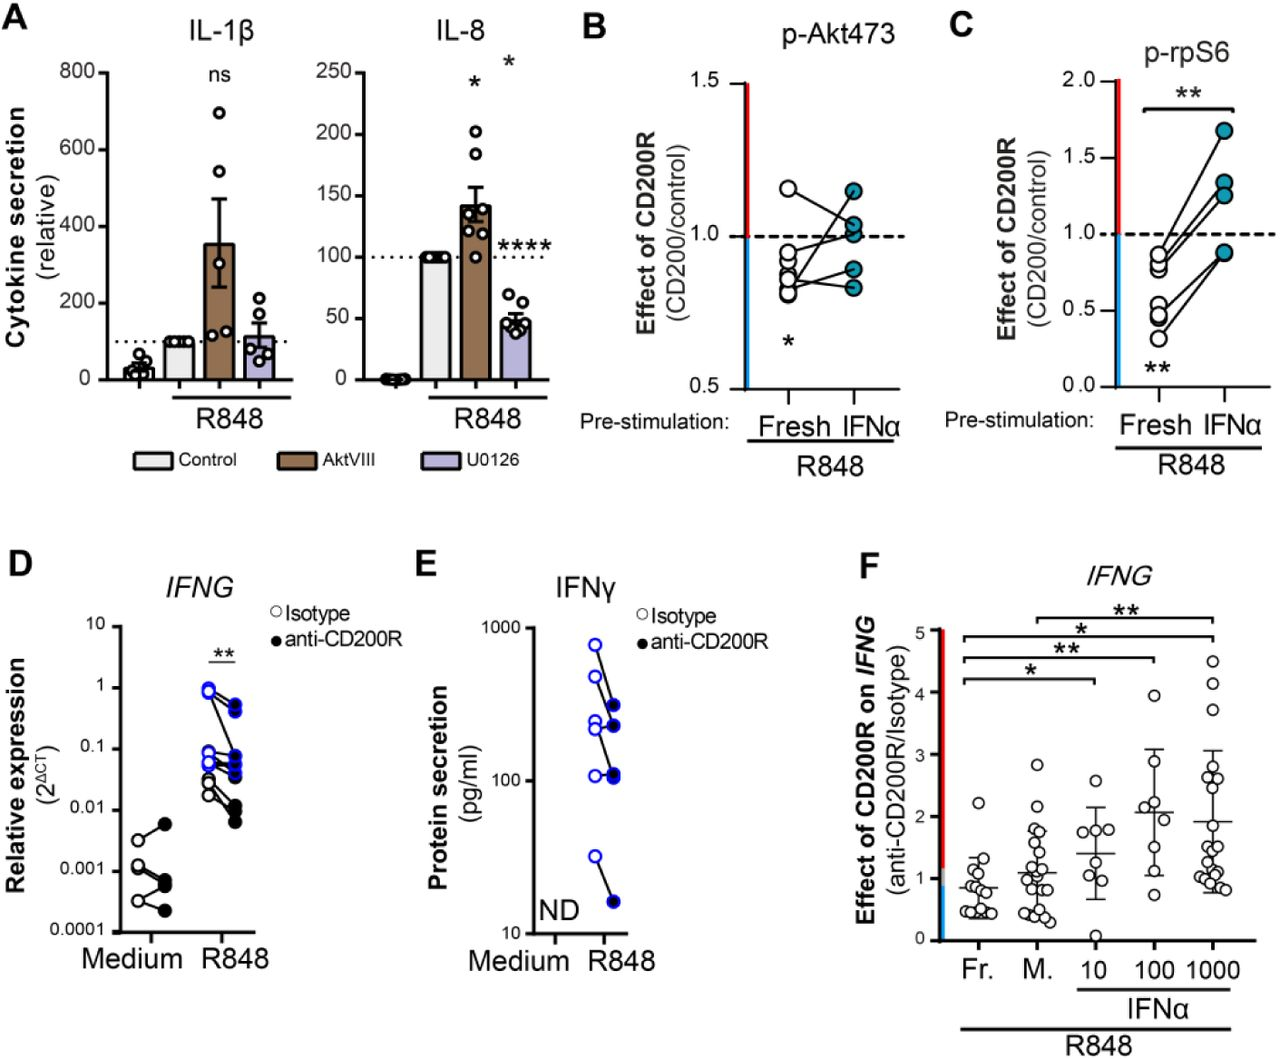 Exposure to type I IFN reverses CD200R function in PBMC ( A ) Cytokine secretion by moDC stimulated with R848 for 6h in presence of control, Akt-inhibitor AktVIII or Mek-inhibitor U0126. IL-1β: n=5, IL-8: n=8. Significance was determined by one-sample t test. ( B, C ) Phosphorylation of p-Akt473 and p-rpS6 in HC moDC. Fresh replated (n=8, 3 samples without IFN-counterpart) or IFNα-stimulated (16h, n=5, paired with fresh samples) moDCs were seeded on plates coated with control (recombinant human CD200R1, rhCD200R1) or recombinant human CD200 (rhCD200). After 2h pre-incubation, the moDC were stimulated with 1µg/ml R848 for 30 minutes. Phosphorylation was assessed by flow cytometry. Depicted is the ratio of phosphorylation in CD200-stimulated conditions over control stimulated conditions. Significance between the effect of CD200R on fresh and IFNα stimulated cells was determined by t test. Significance of the effect of CD200R in medium or IFNα stimulated cells was determined by one-sample t test. ( D, E ) mRNA (n=11) and protein (n=6) data on R848-induced IFNG or IFNγ production in PBMC. Donors with blue lines are matched between mRNA and protein data. Significance was determined by Wilcoxon test. ND = not detectable. ( F ) The ratio of R848 induced IFNG mRNA production of PBMC stimulated with anti-CD200R over PBMC stimulated with isotype. IFNG mRNA production was measured in healthy control PBMC that were used fresh after isolation (Fr., n=14), or have been cultured for 16h in medium (Med, n=20), 10 (n=8), 100 (n=8) or 1000 (n=20) U/ml of IFNα prior to ligation of CD200R with an agonistic antibody and stimulation of TLR7/8 with R848 for 4h. Significance was determined by a paired t test with Welch correction.